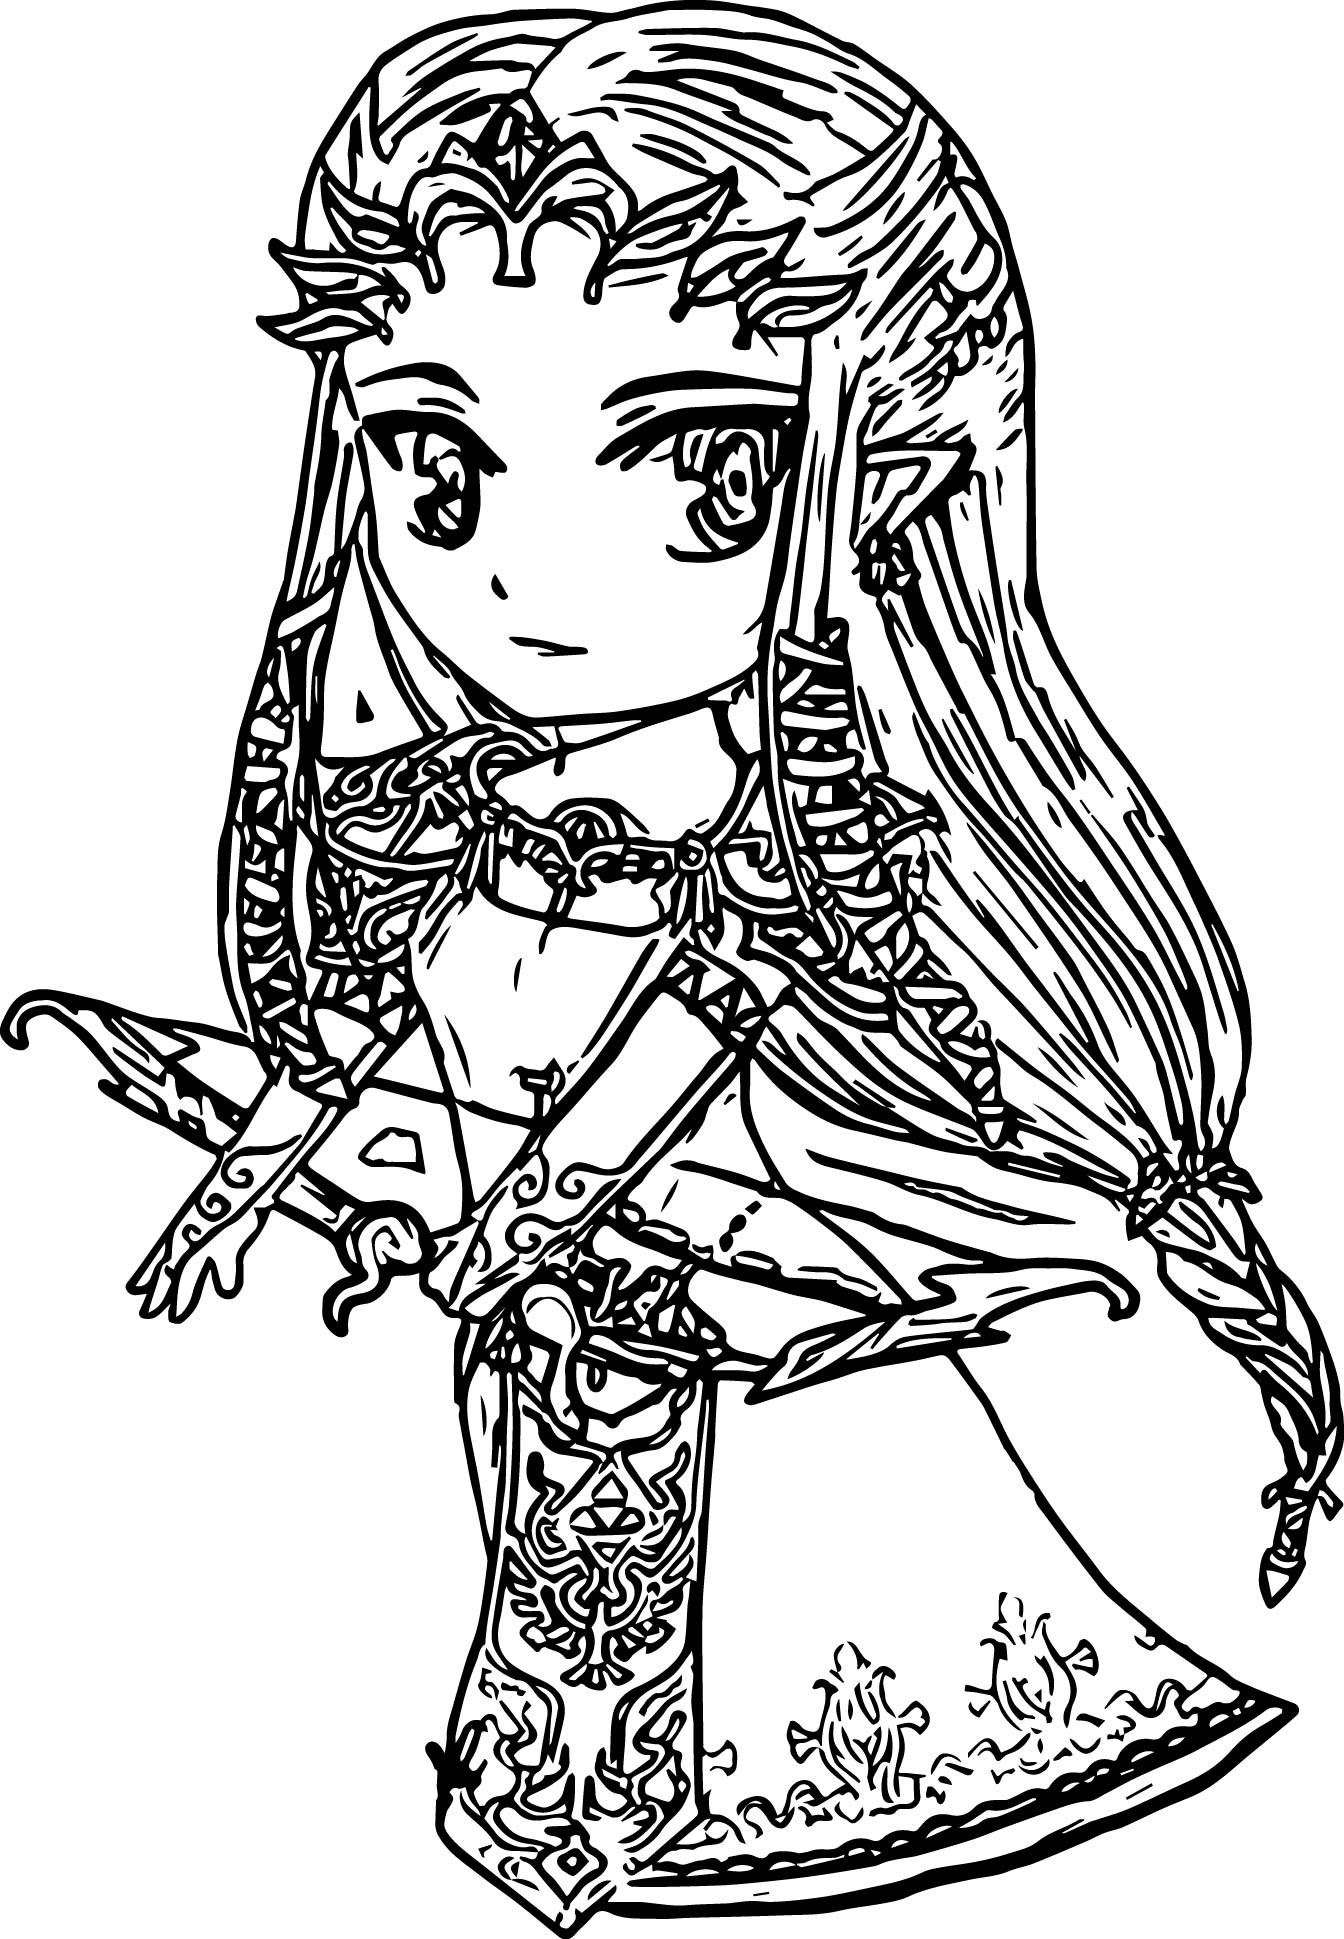 Chibi Zelda Twilight Princess Coloring Page